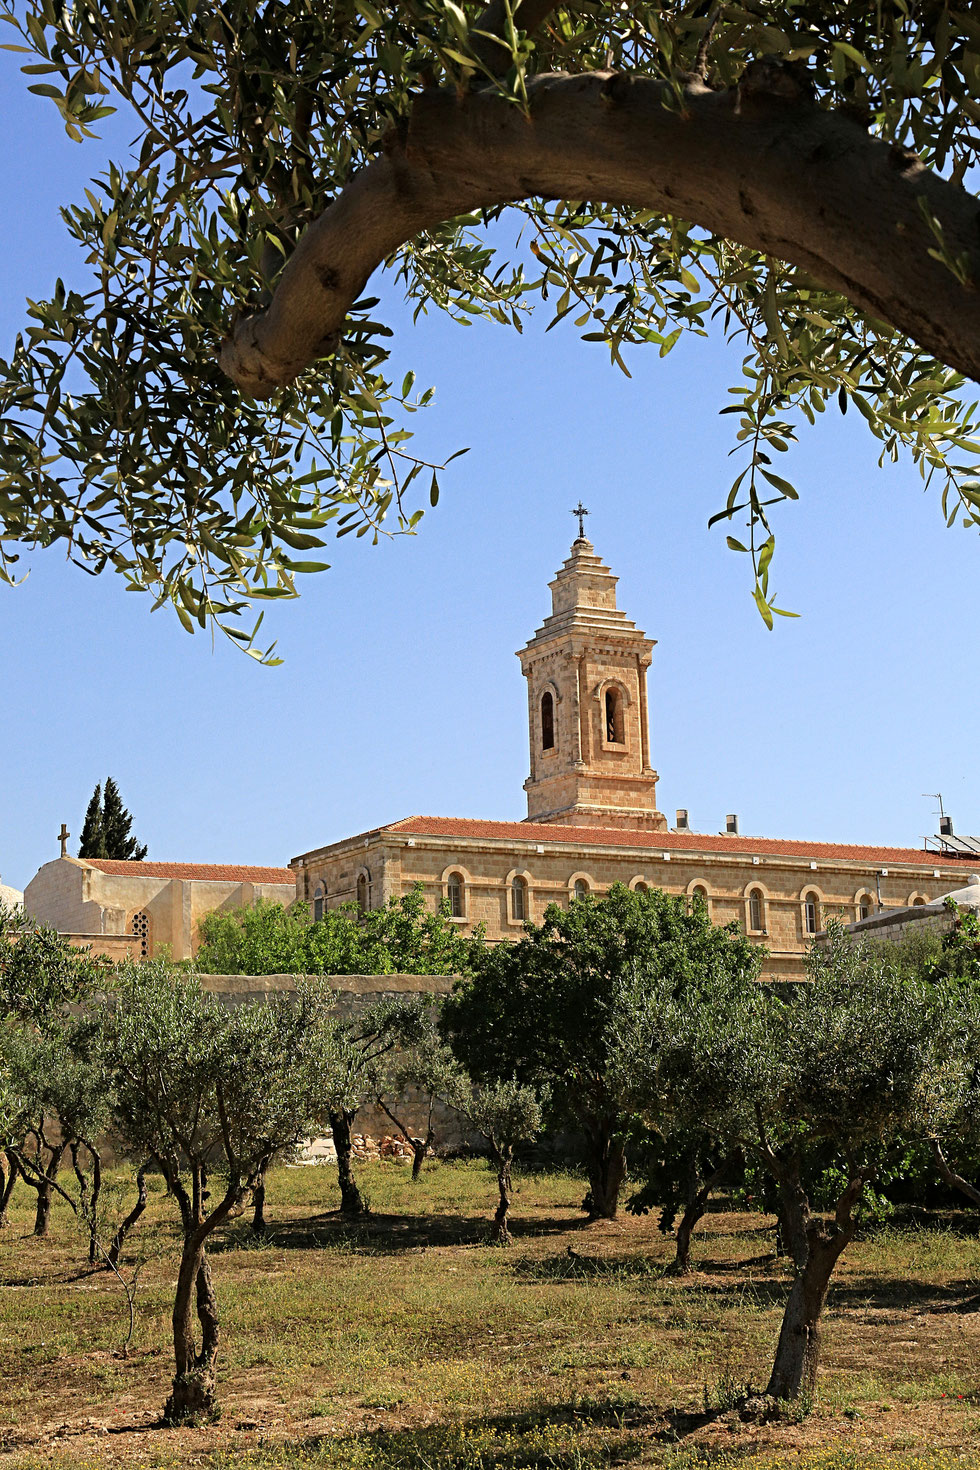 The Church of Pater Noster on the Mount of Olives. Jerusalem. Israël.